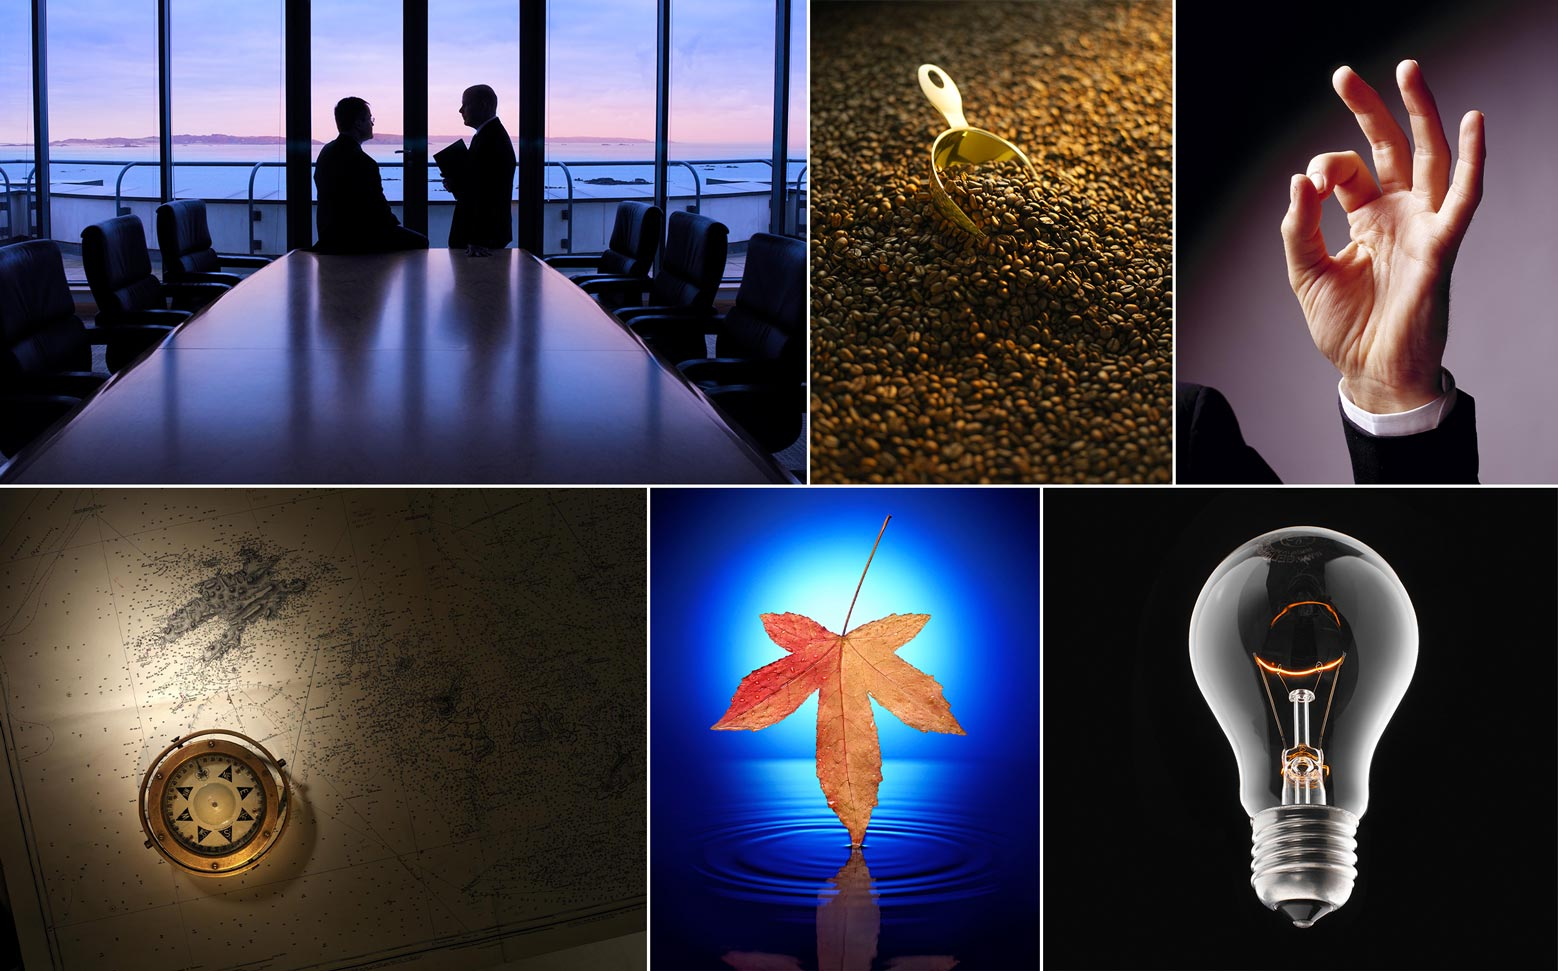 Stock images by Karl Taylor